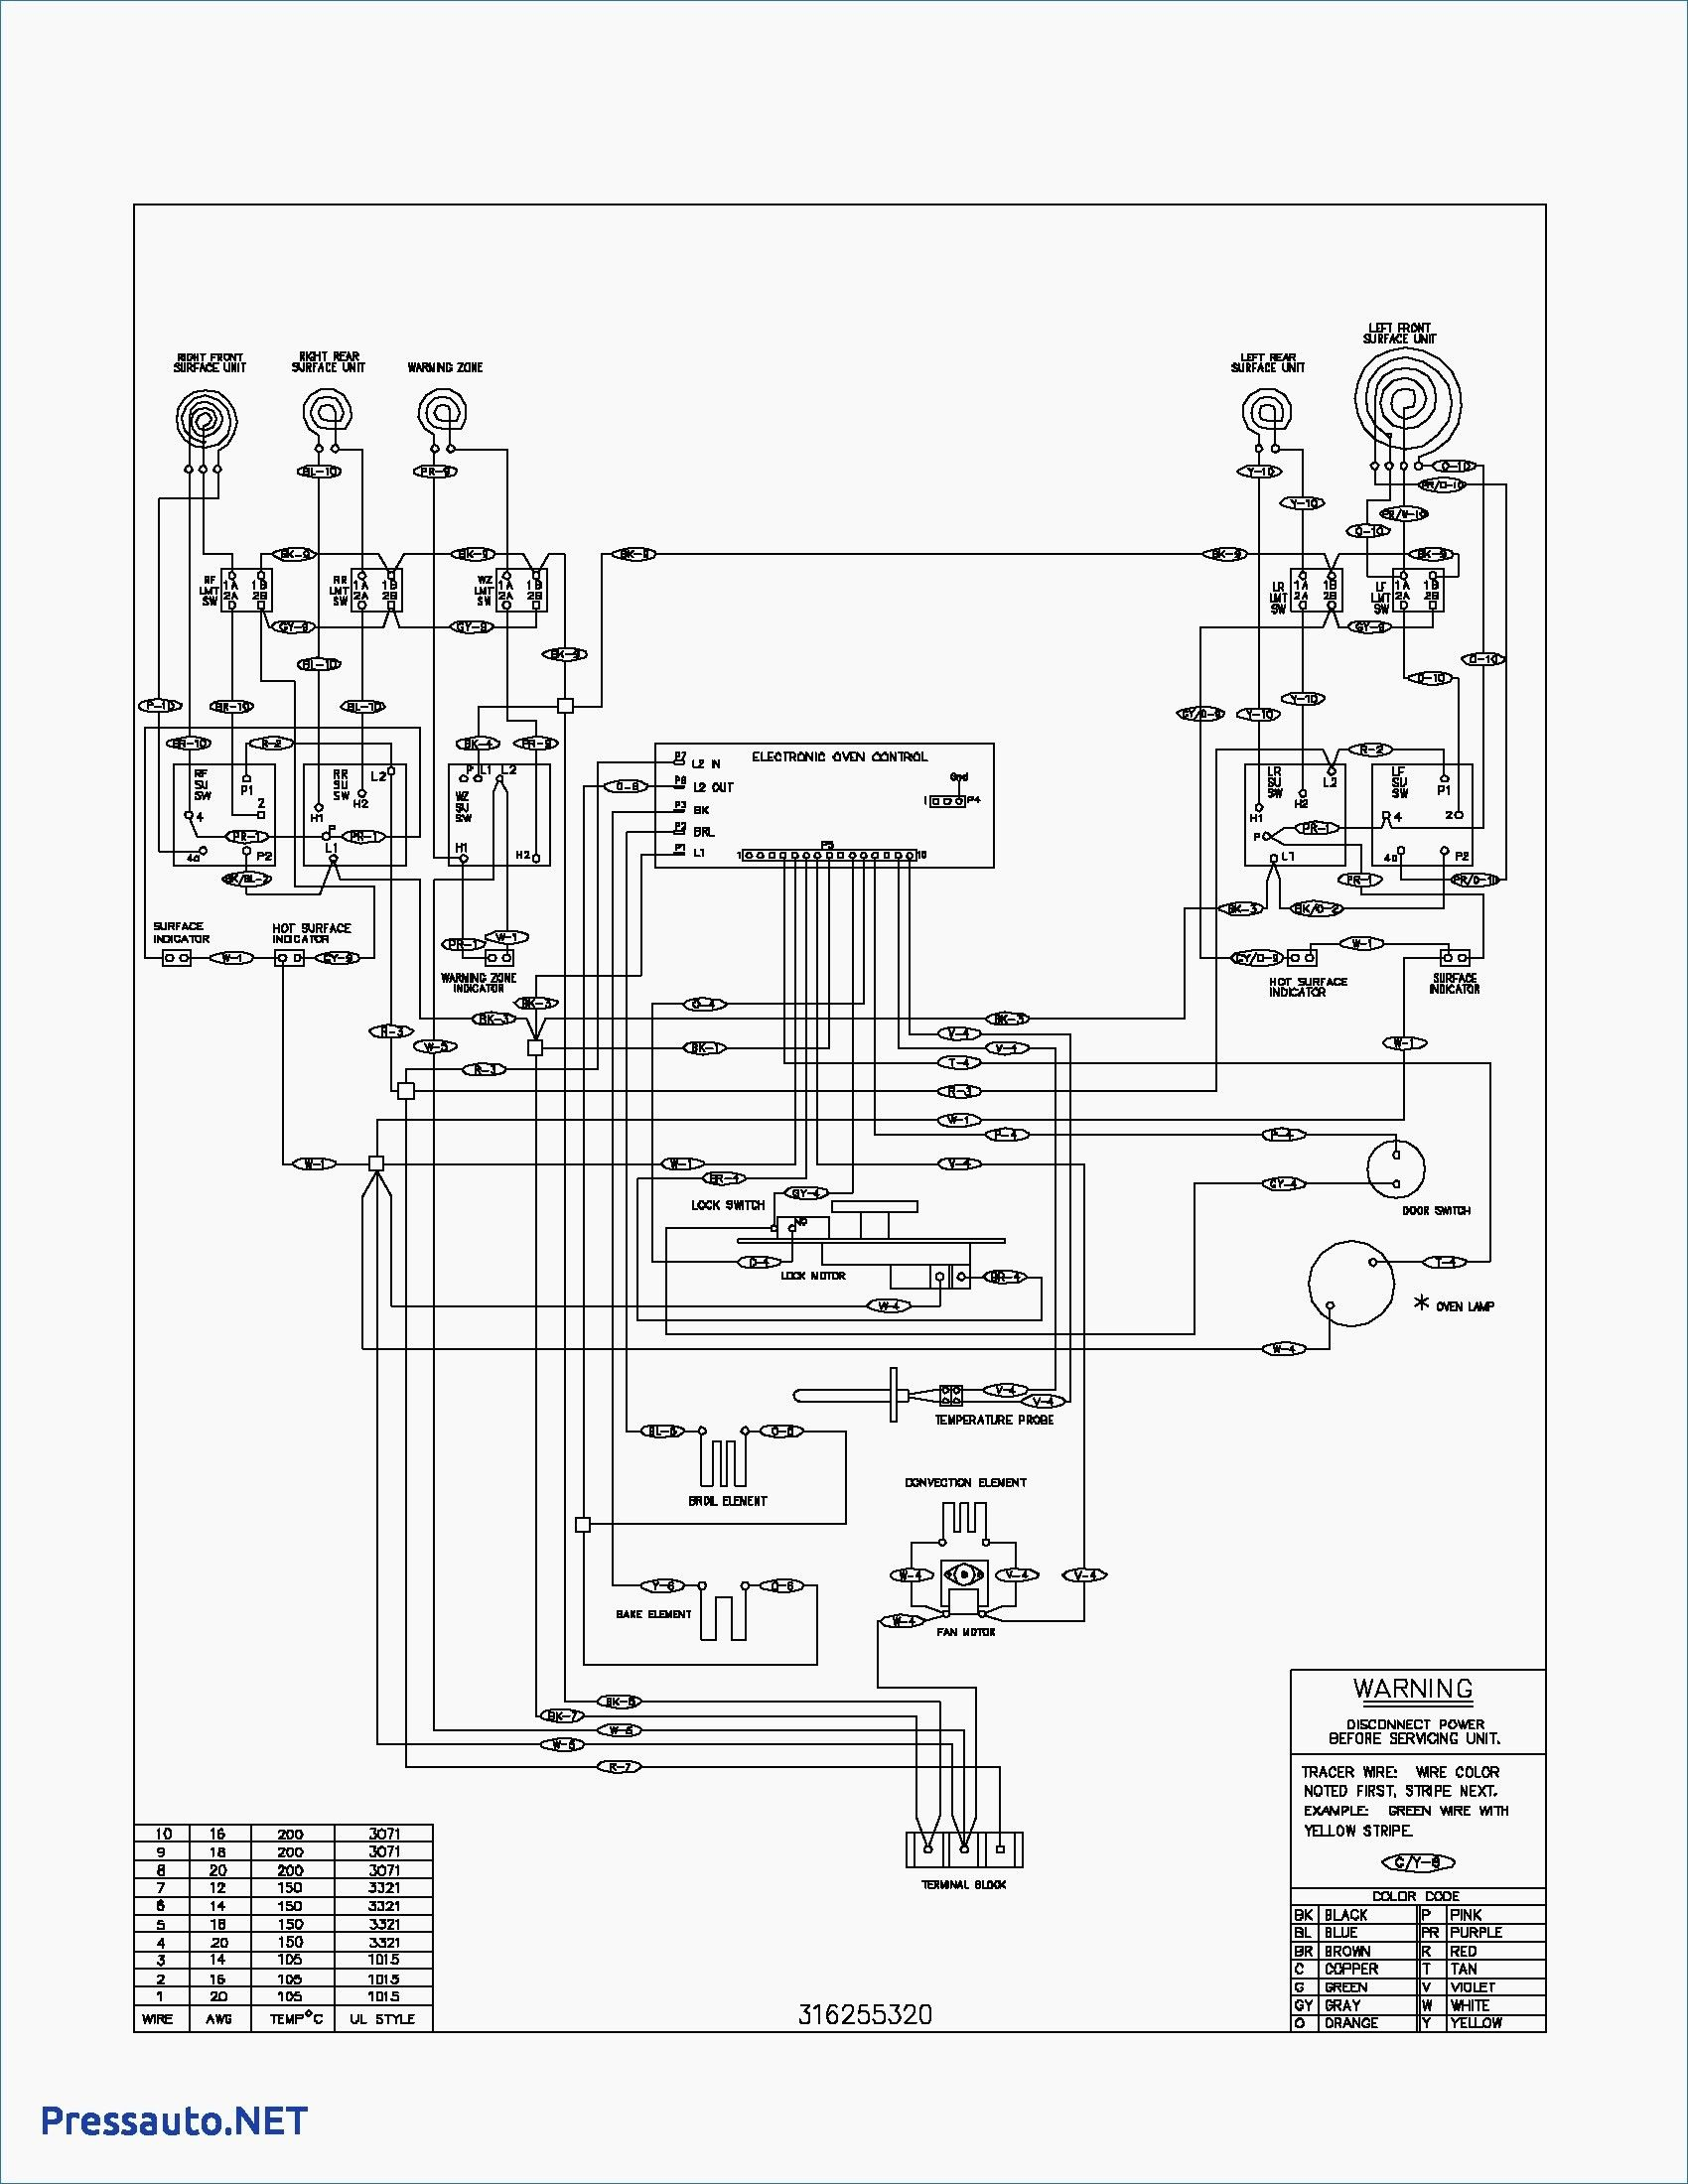 Beautiful Wiring Diagram Great Corolla Diagrams Digramssample